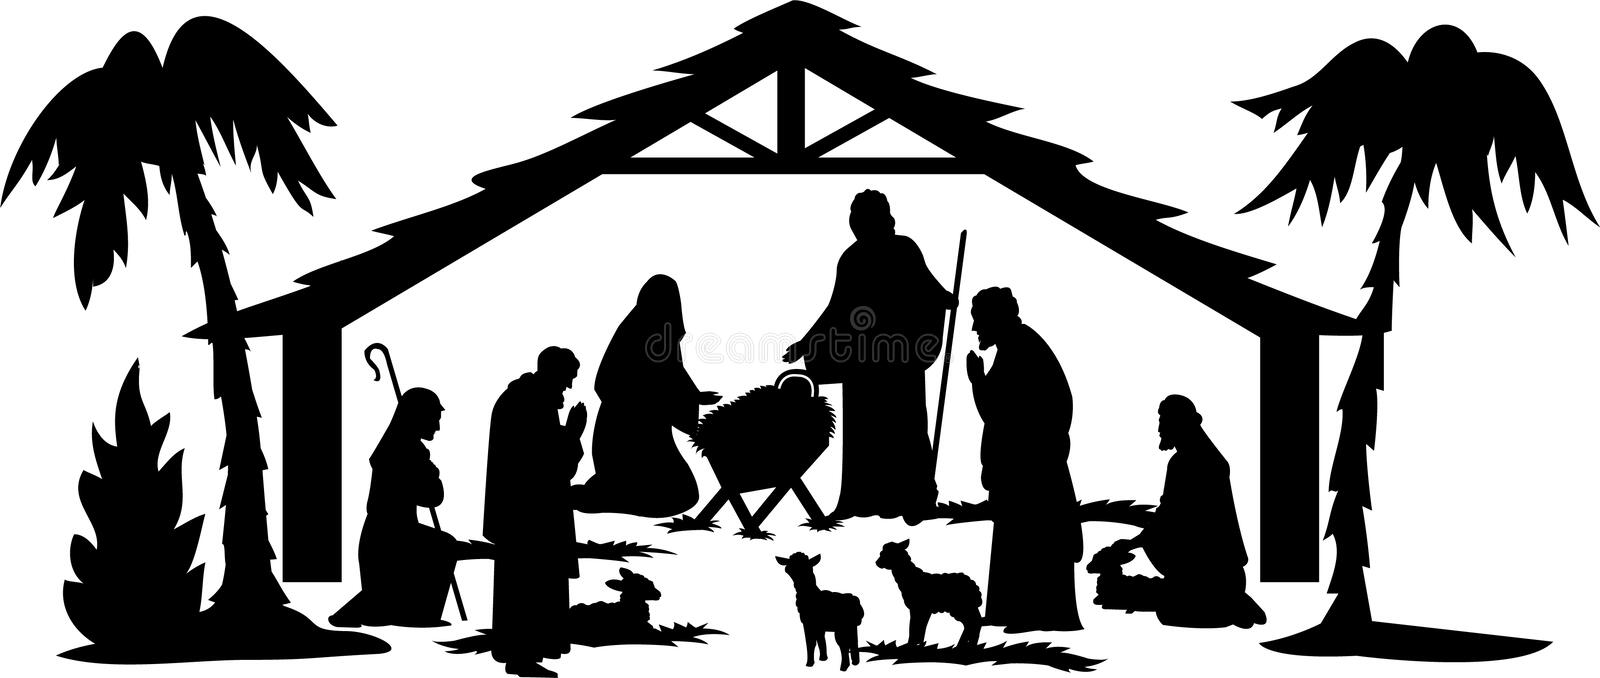 Nativity Silhouette/eps royalty free illustration